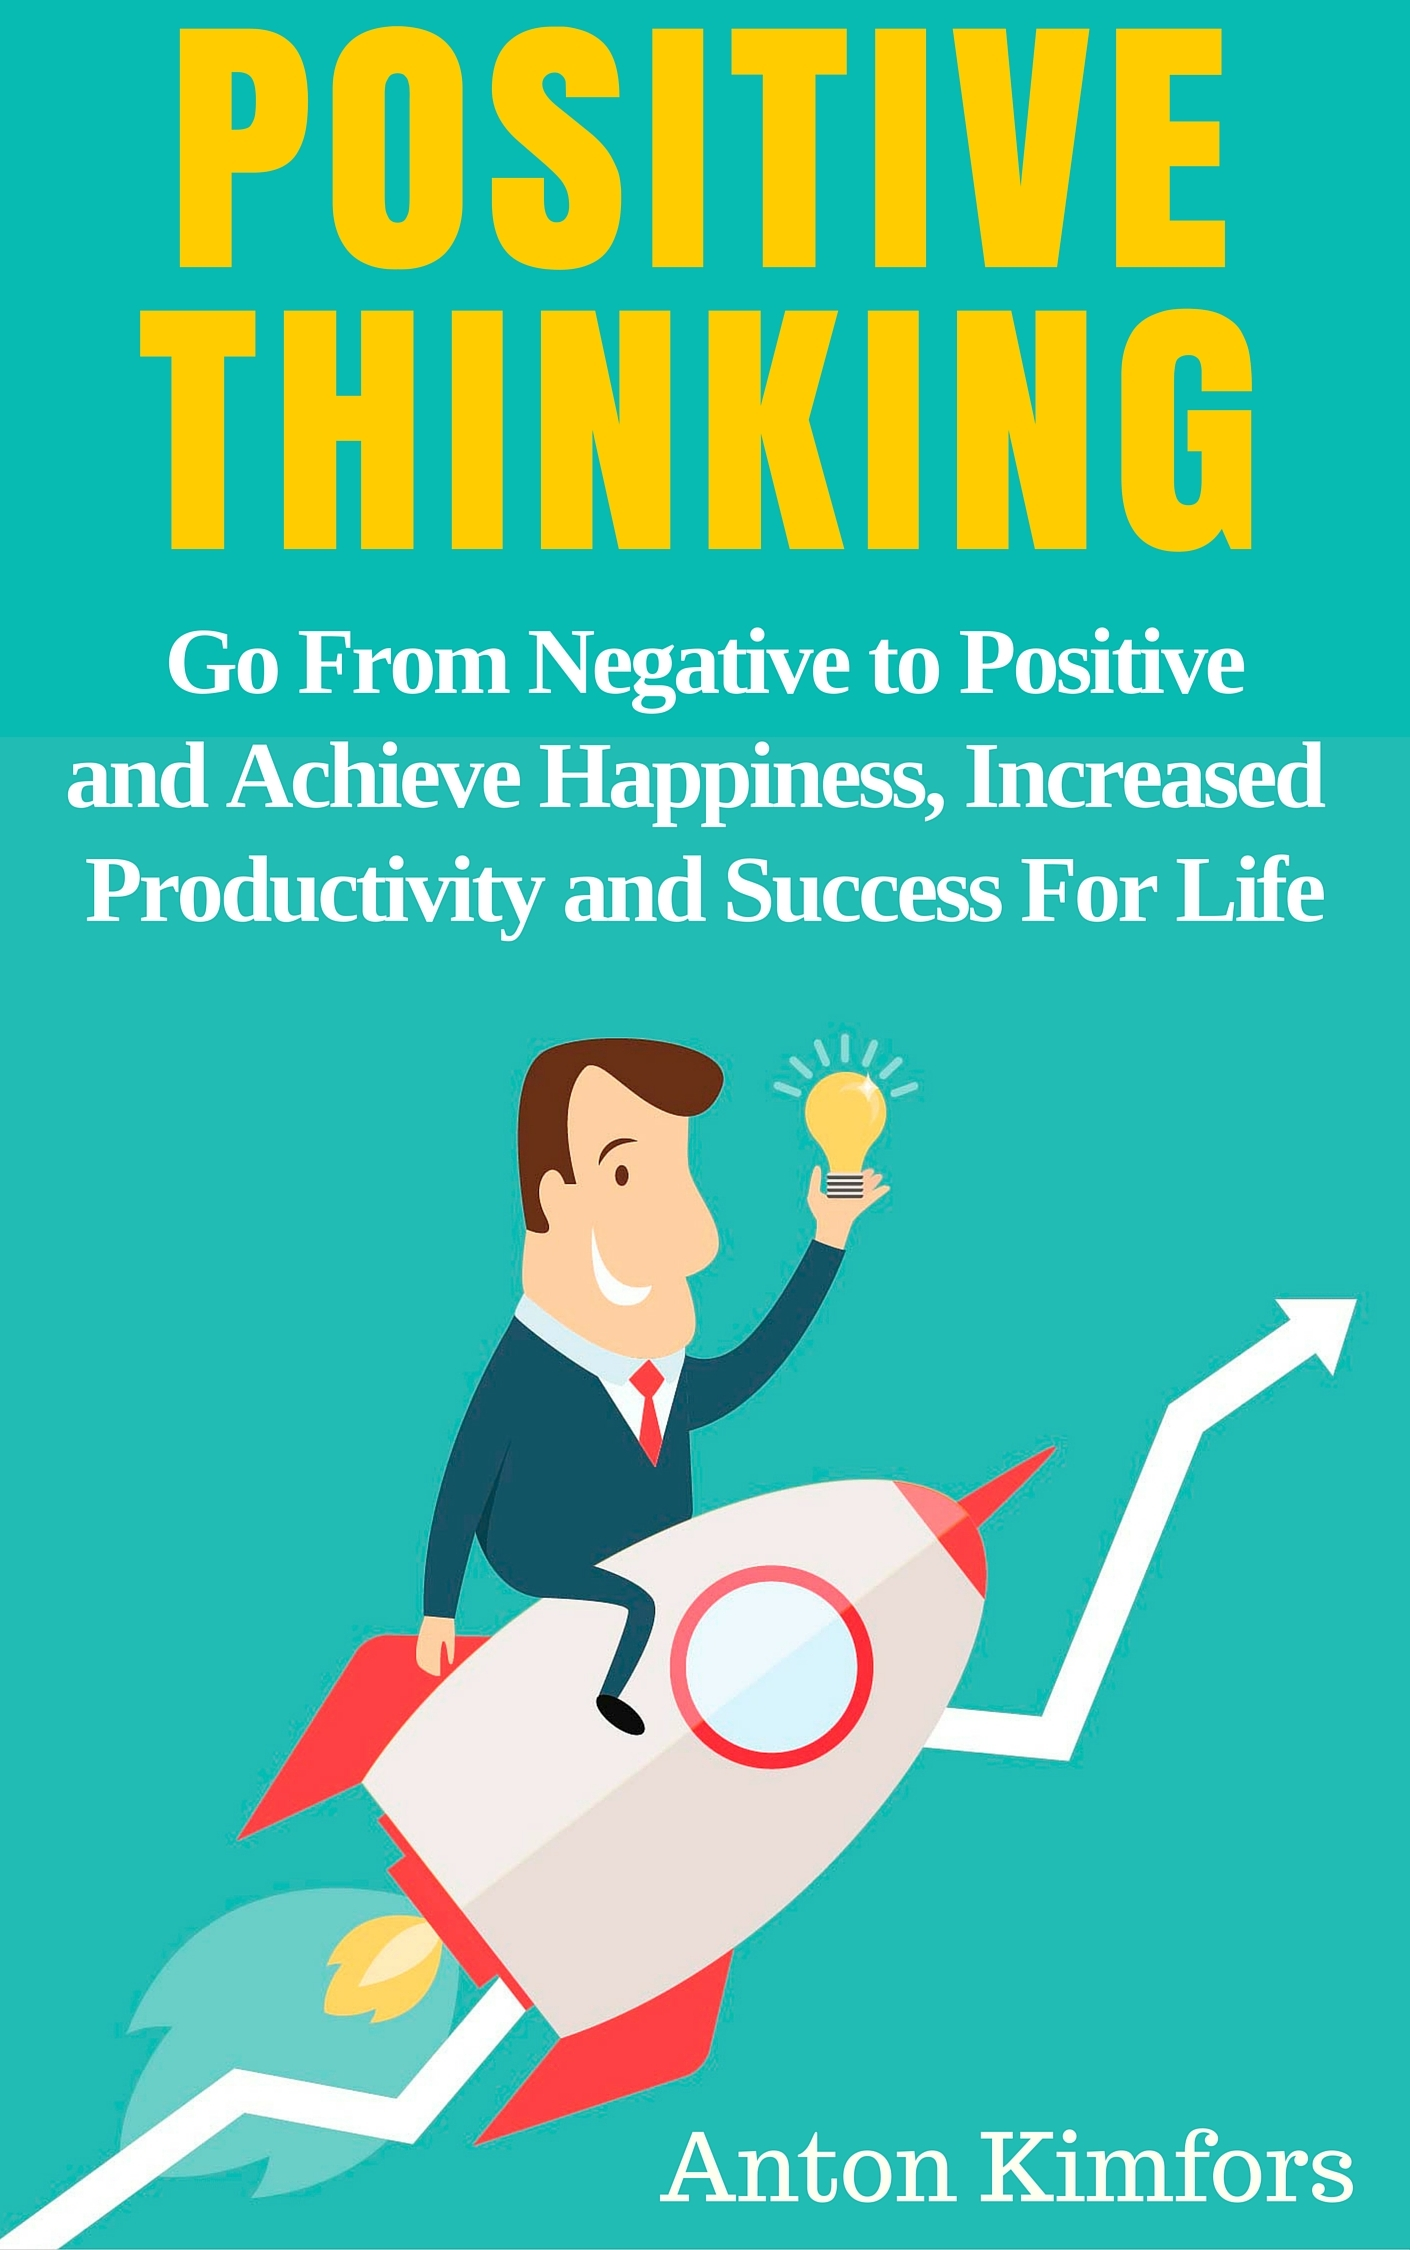 Positive-Thinking-Go-From-Negative-to-Positive-and-Achieve-Happiness-and-Success-For-Life